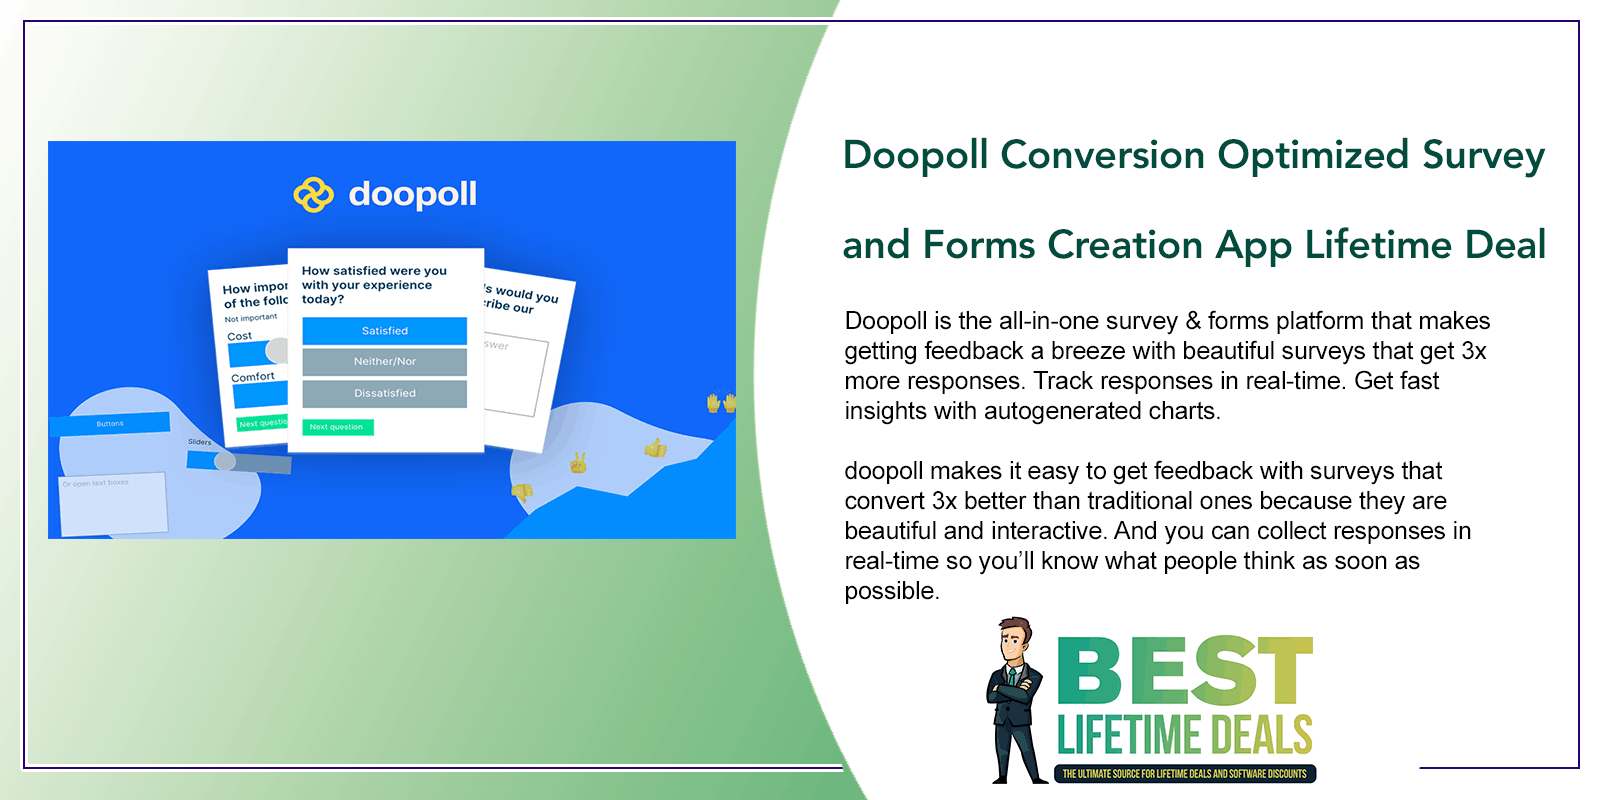 Doopoll Conversion Optimized Survey Featured Image